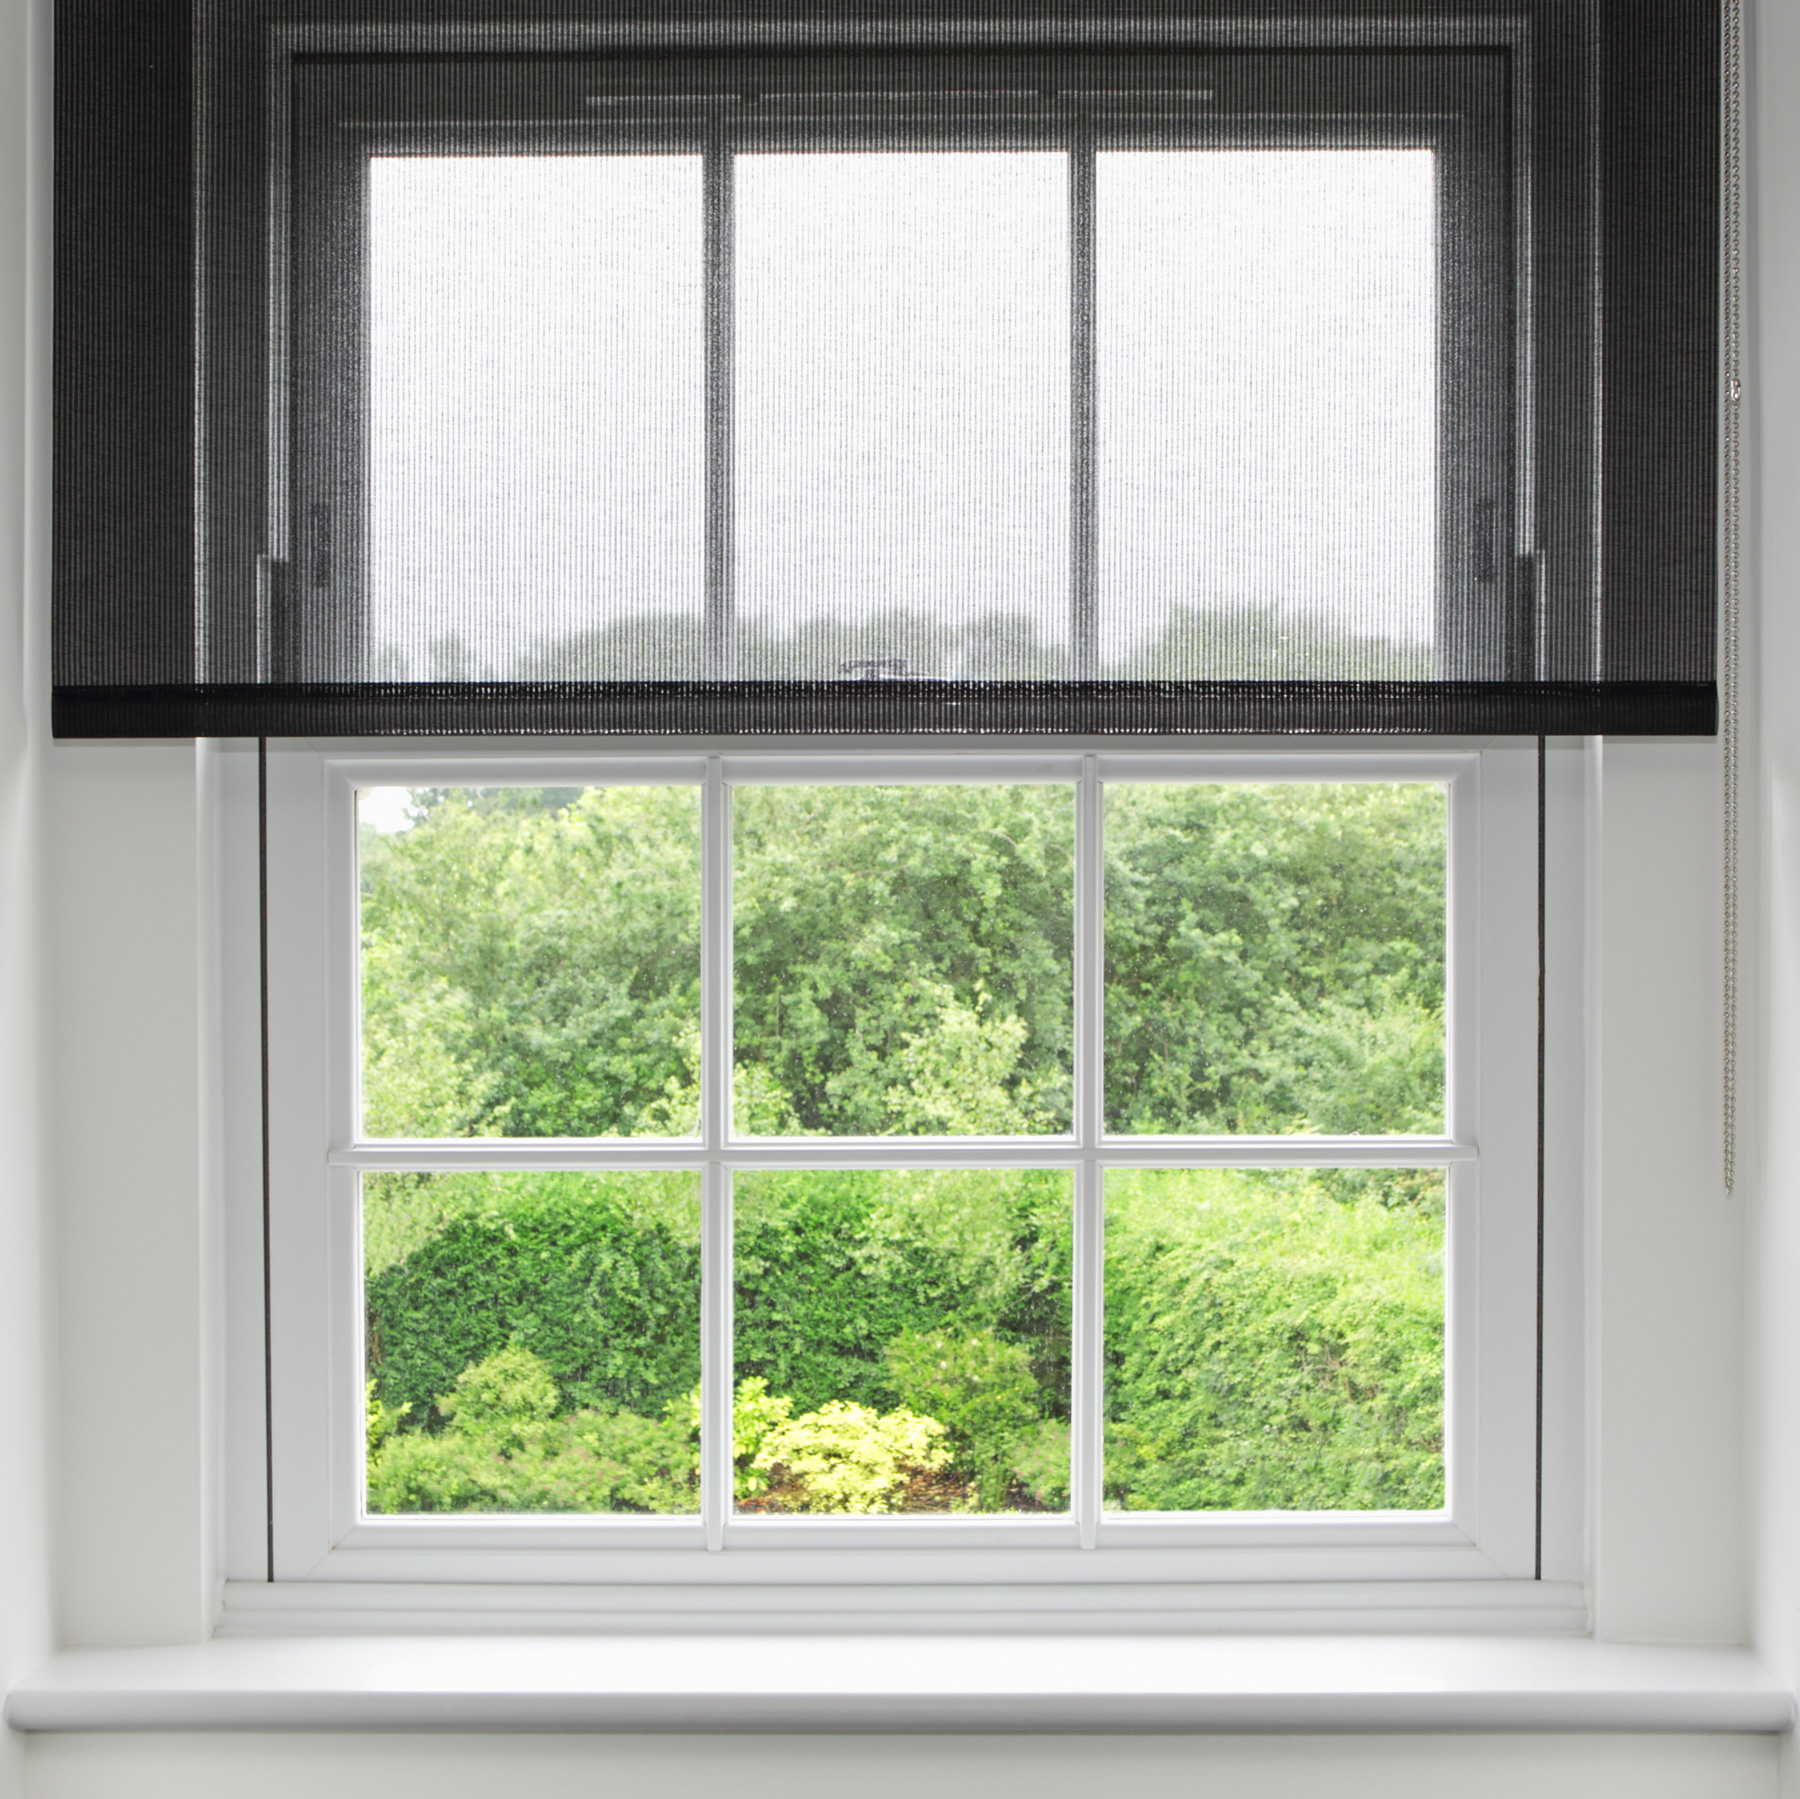 10 Ways to Make Your Home Greener: thermal shades to conserve energy